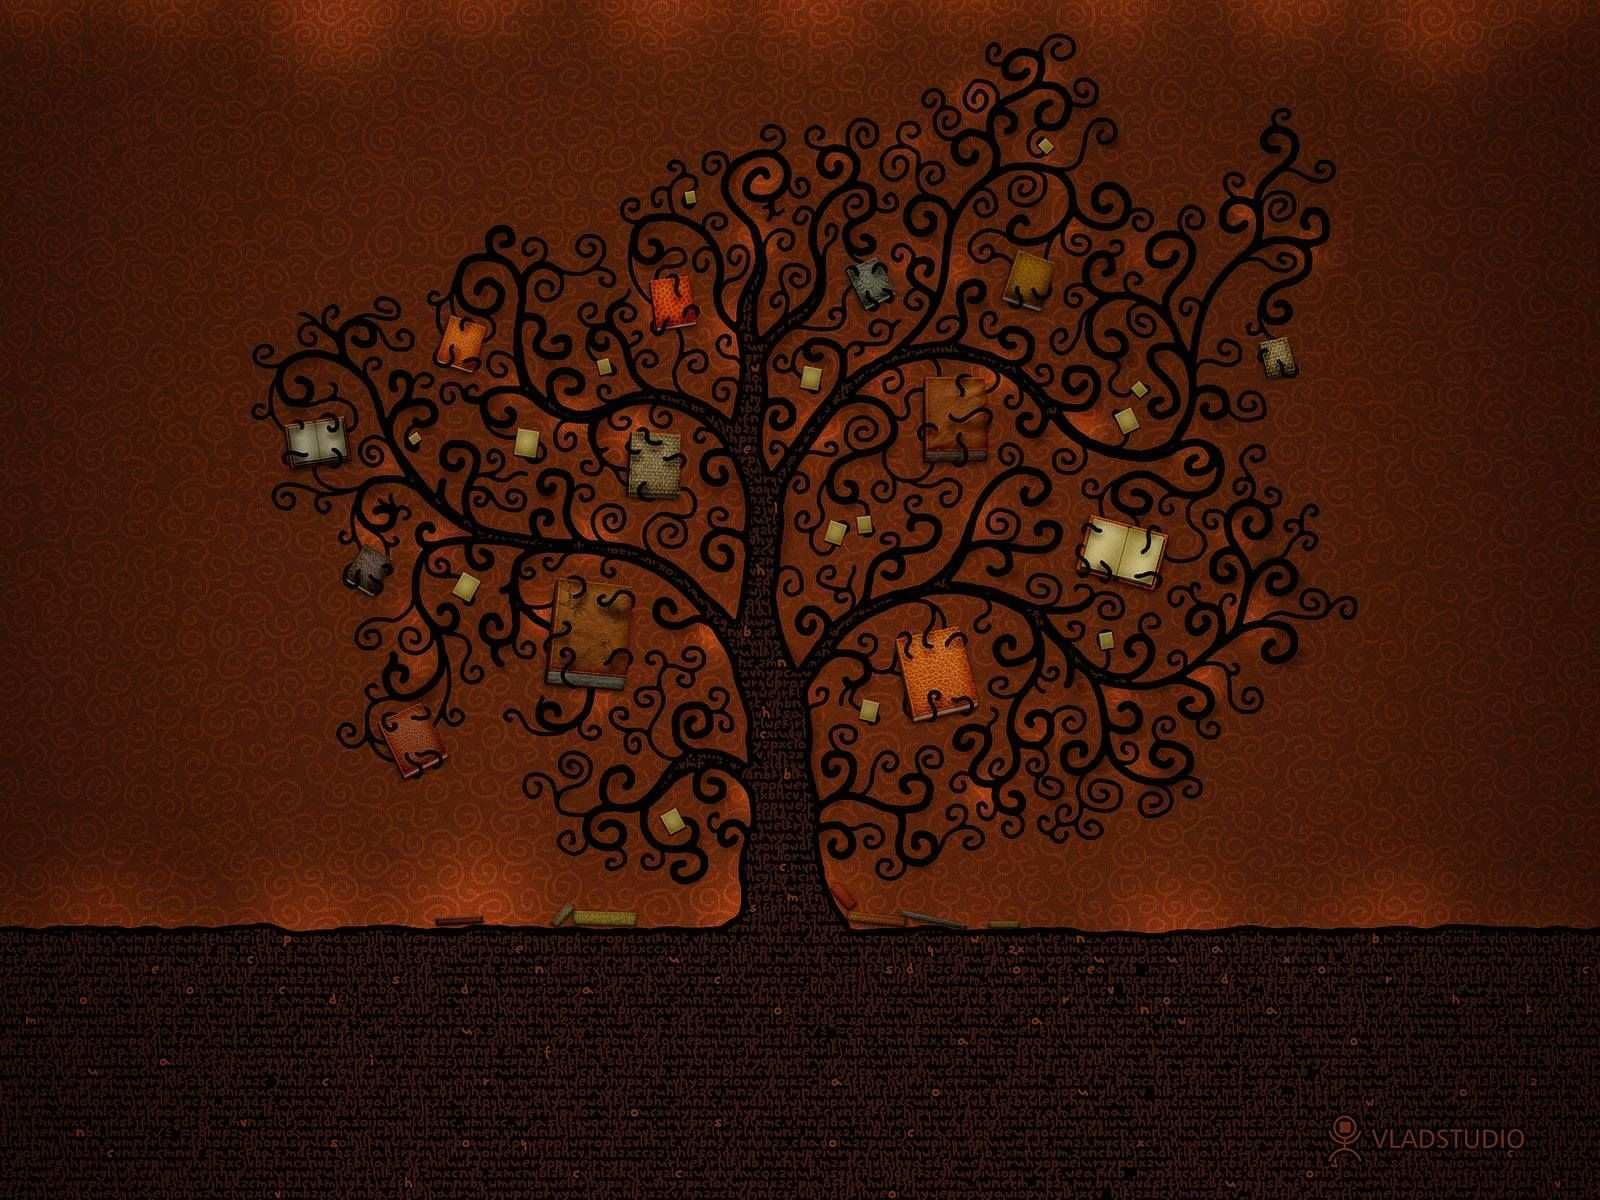 We all have within us at birth the seeds for a tree of knowledge